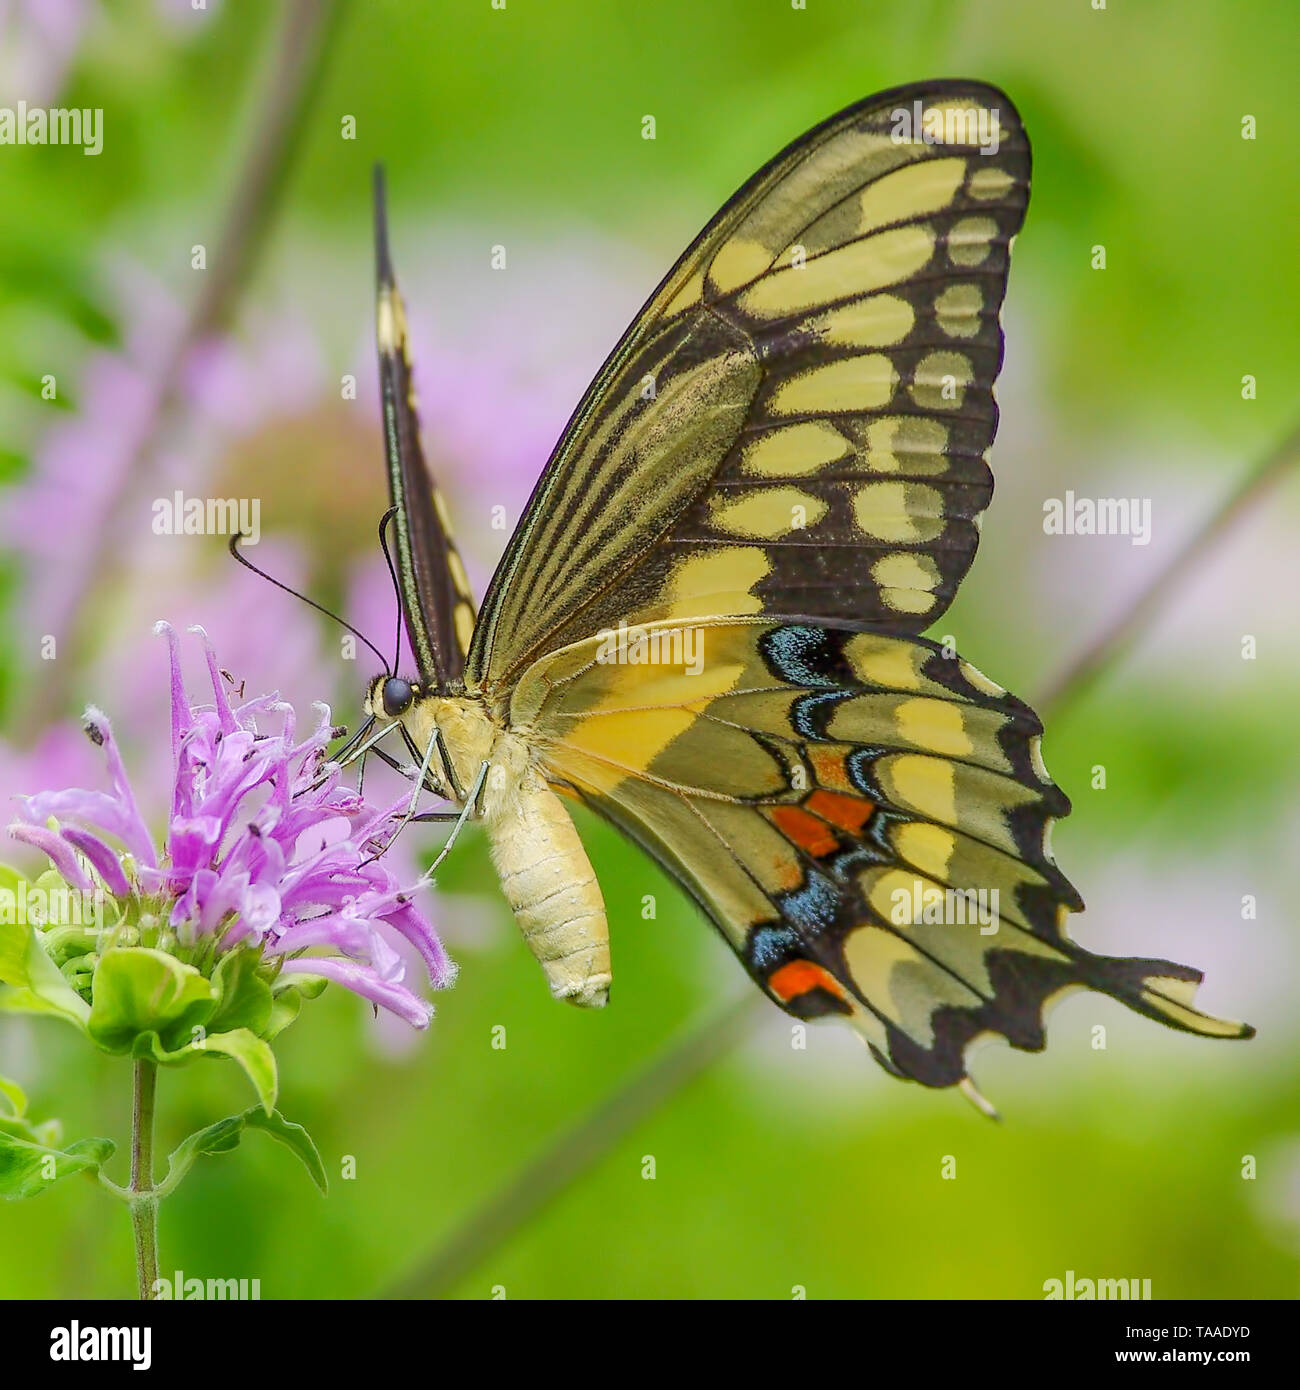 Swallowtail butterfly feeding on a purple wildflower in Theodore Wirth Park in Minneapolis, Minnesota - Stock Image